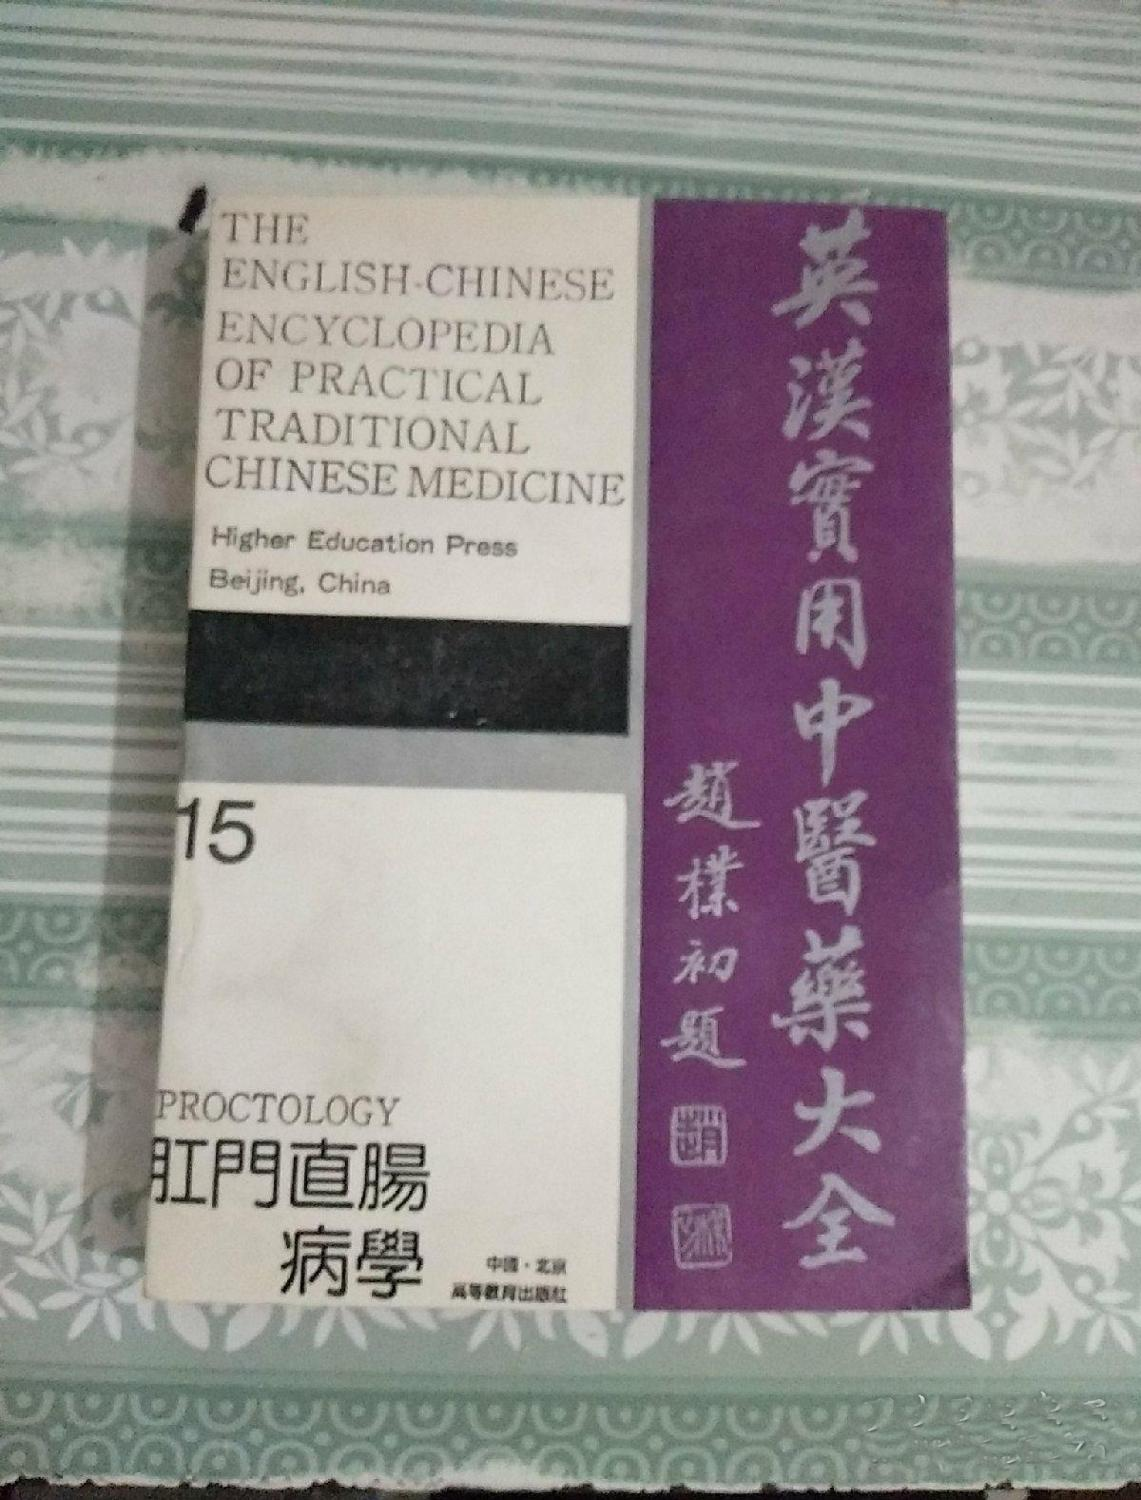 Used Bilingual Chinese & English Encyclopaedia Series Book 15 Anorectal Disease Medical Book